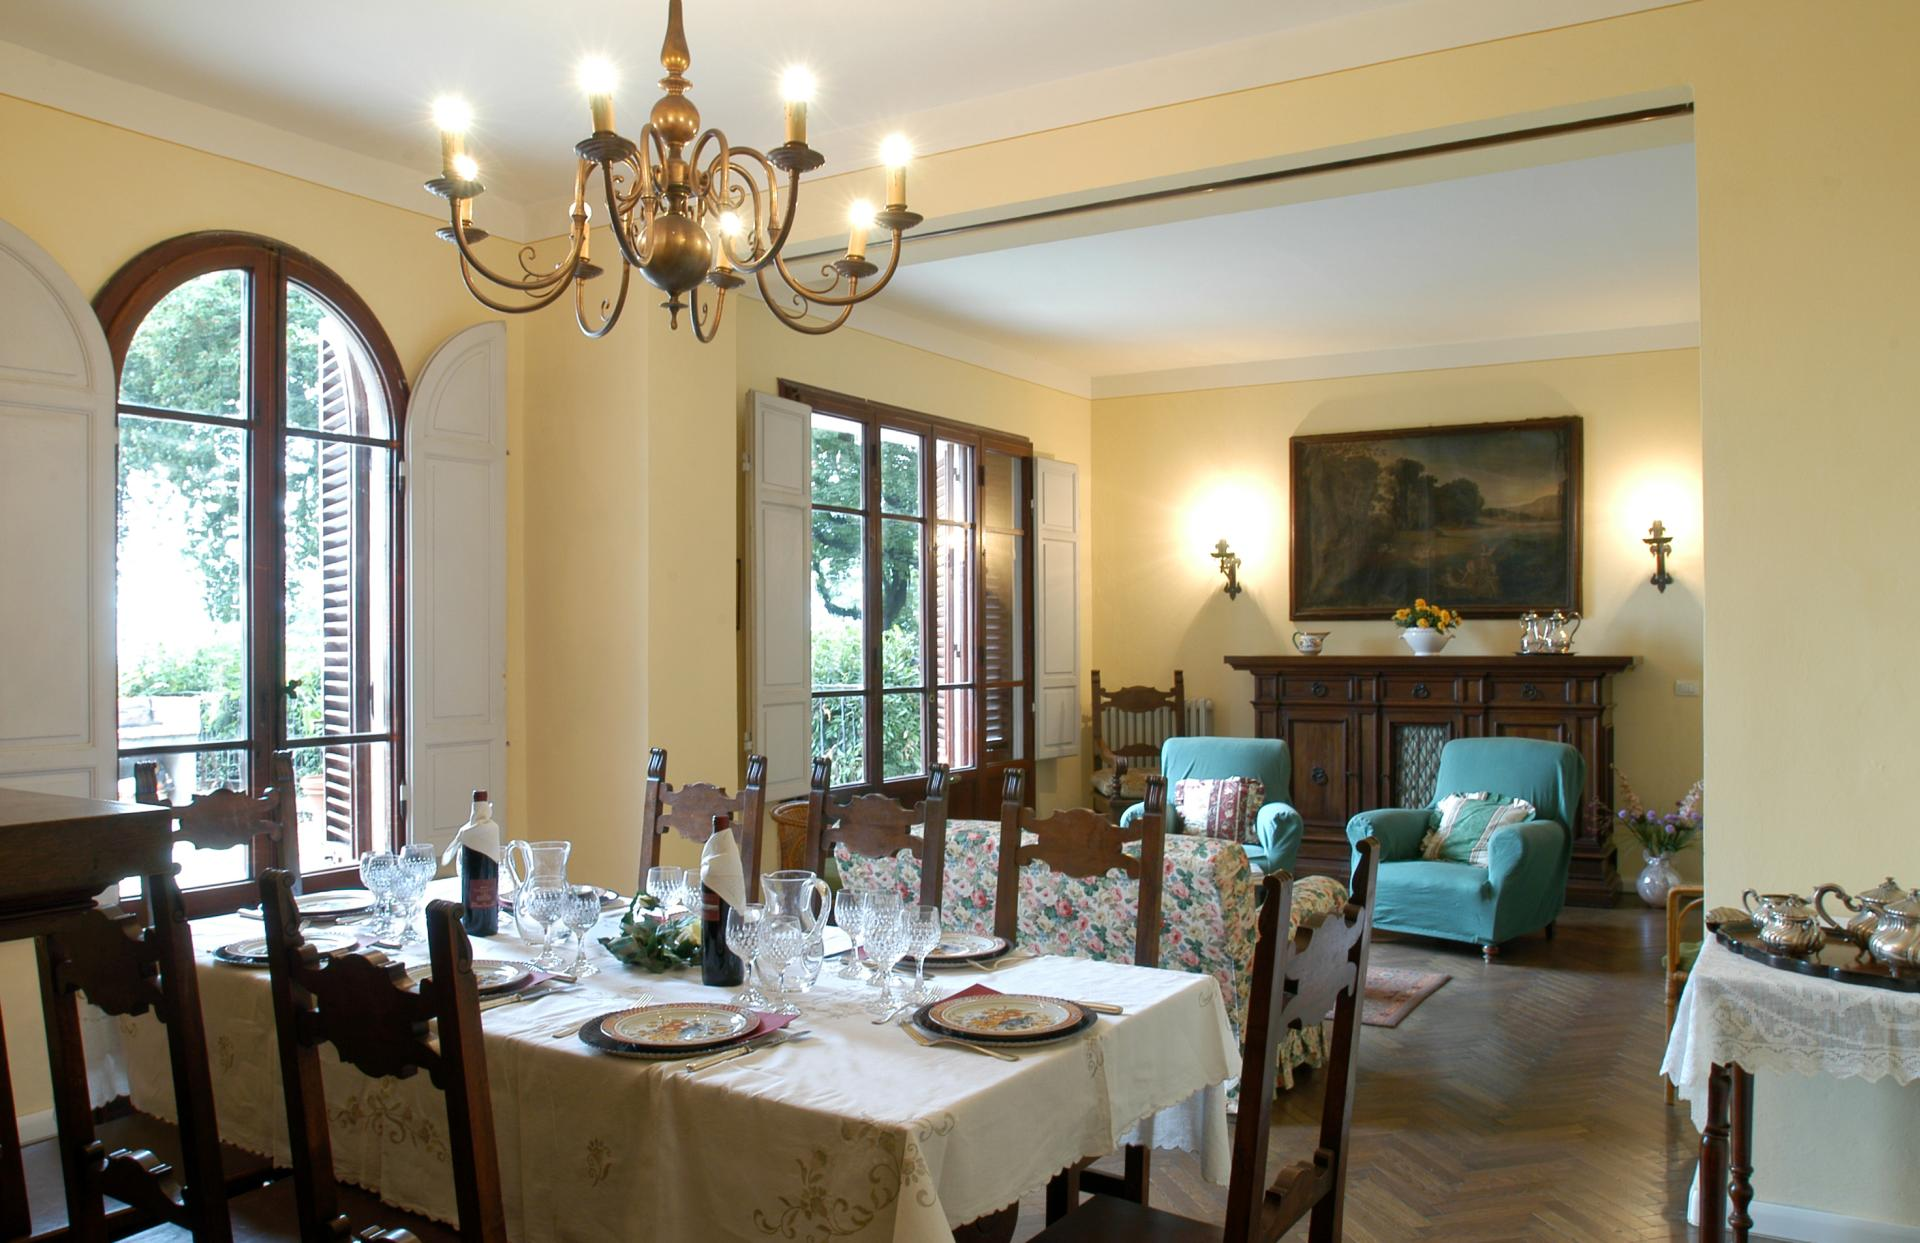 Dining room and lounge with fireplace, Borgo Raffaello, Tuscany, Pistoia.